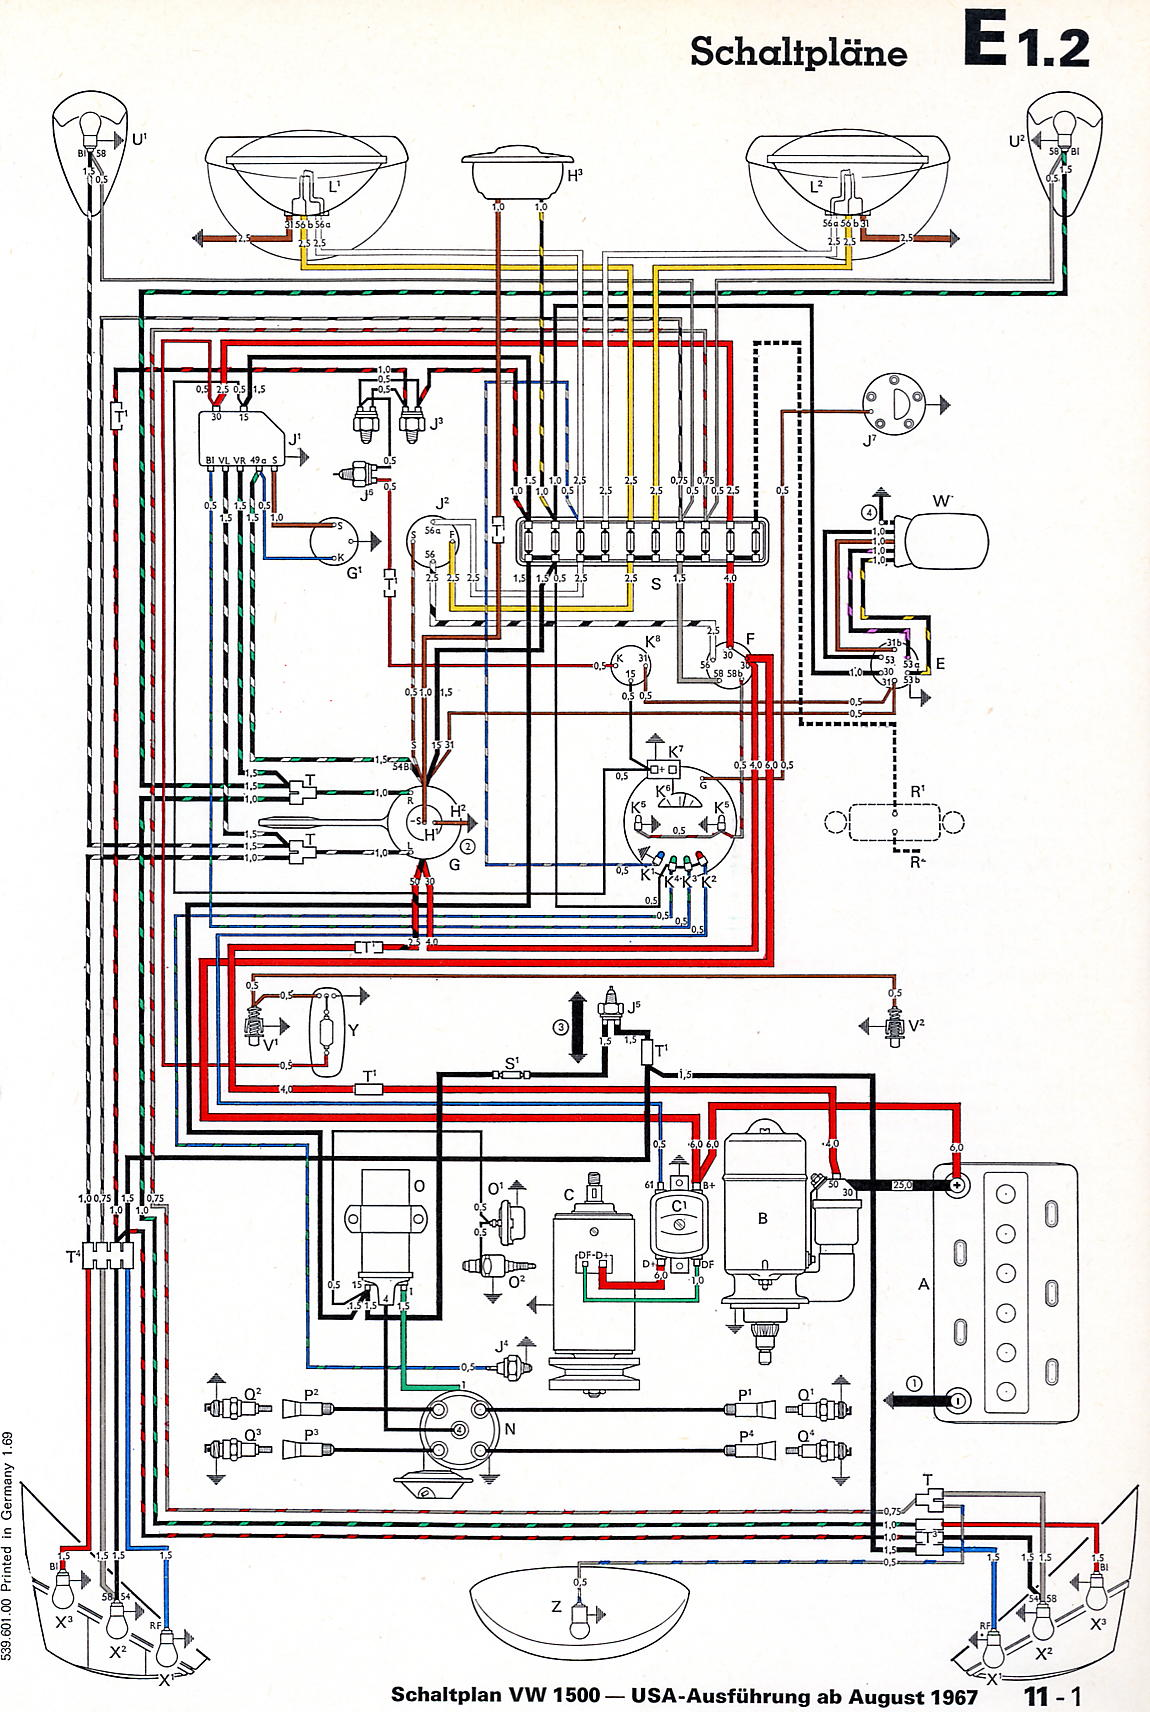 Fiat 80 90 Wiring Diagram Diy Diagrams 1973 1300 Engine Example Electrical Circuit U2022 Rh Electricdiagram Today Chevy Ignition Coil 2012 500